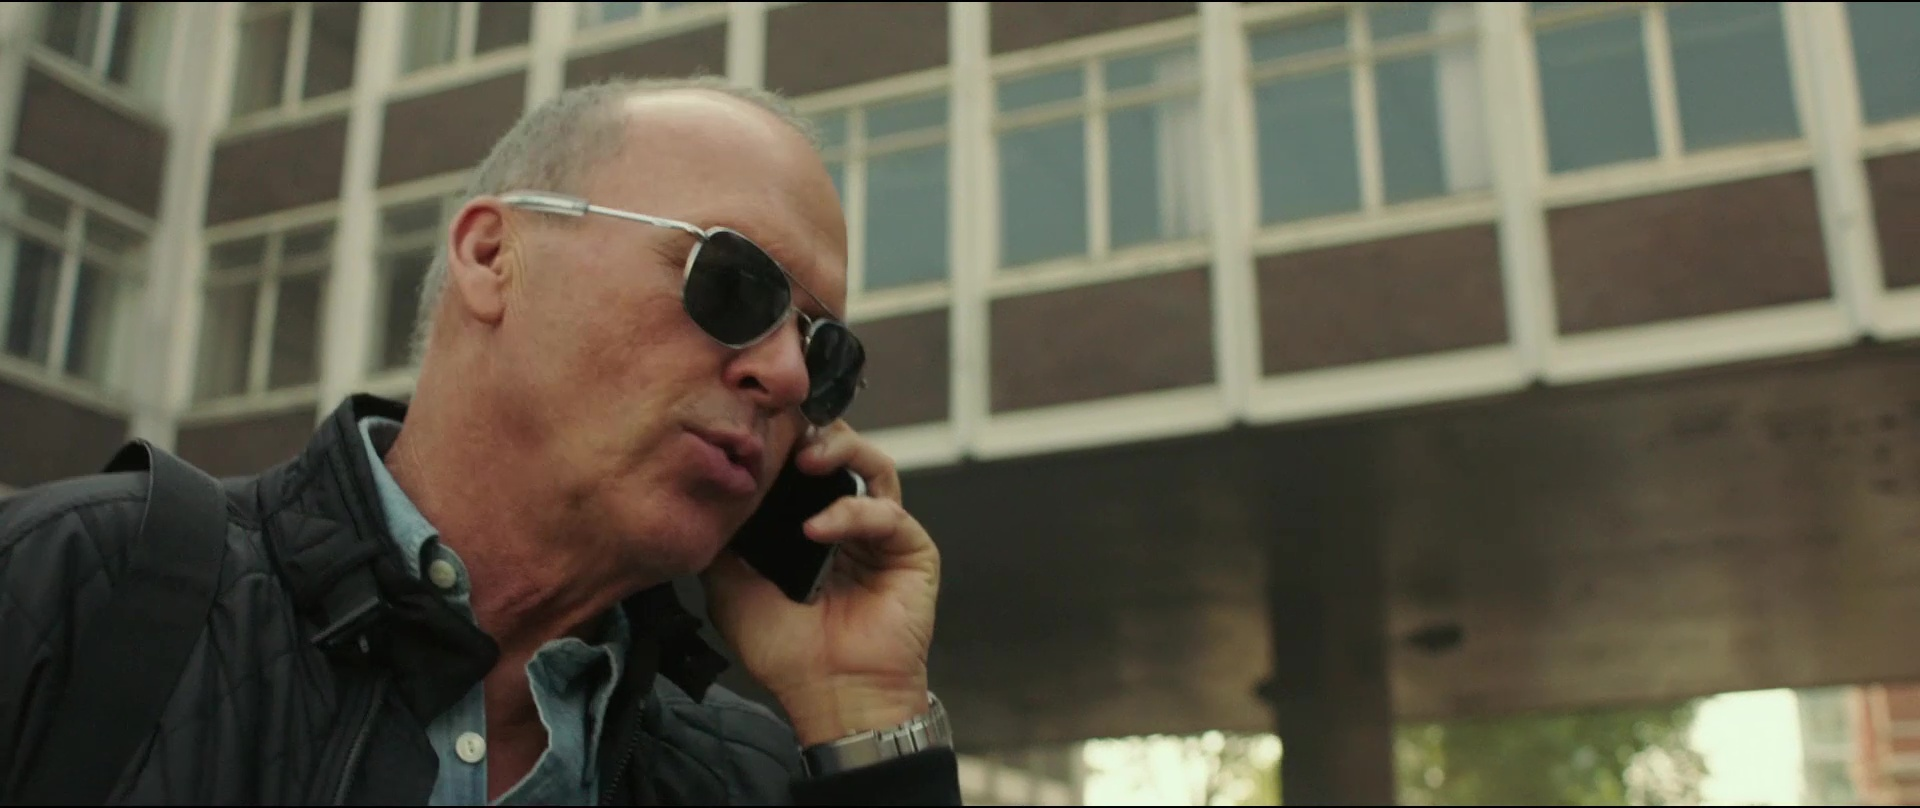 84cb0c8077 Randolph Engineering Aviator Sunglasses Worn by Michael Keaton in American  Assassin (2017) Movie Product